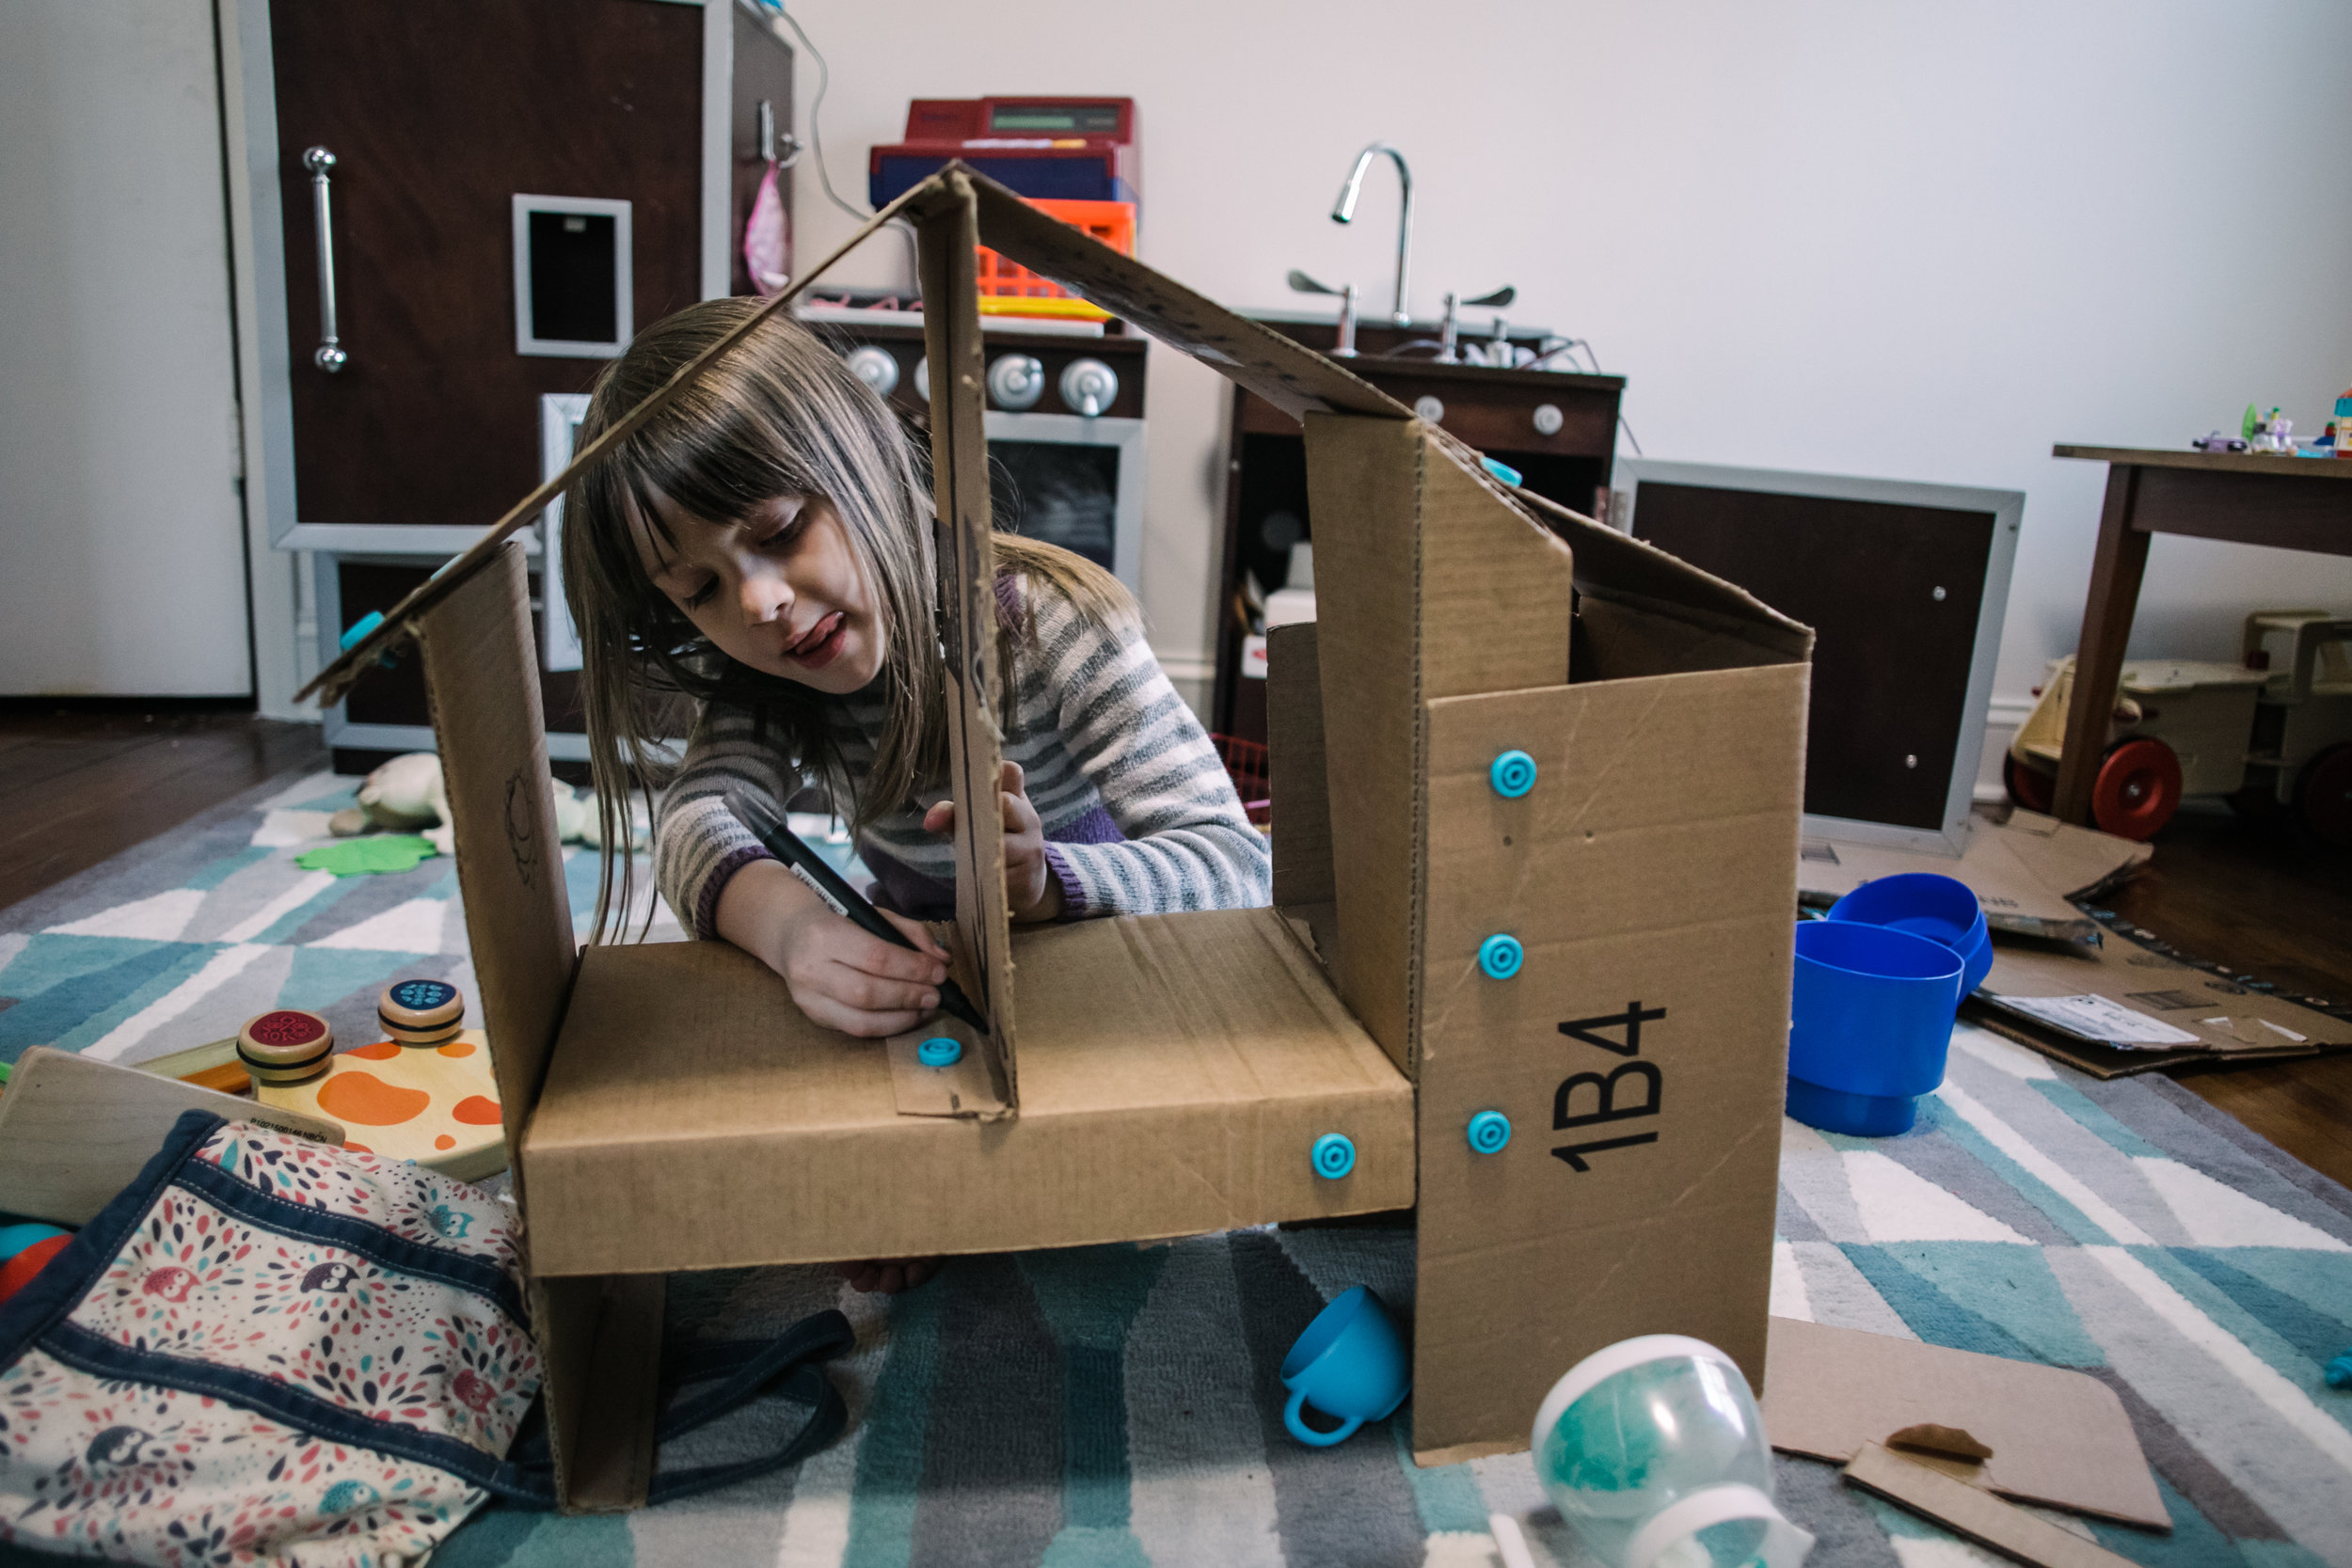 Girl writes on cardboard house with marker while sticking her tongue out